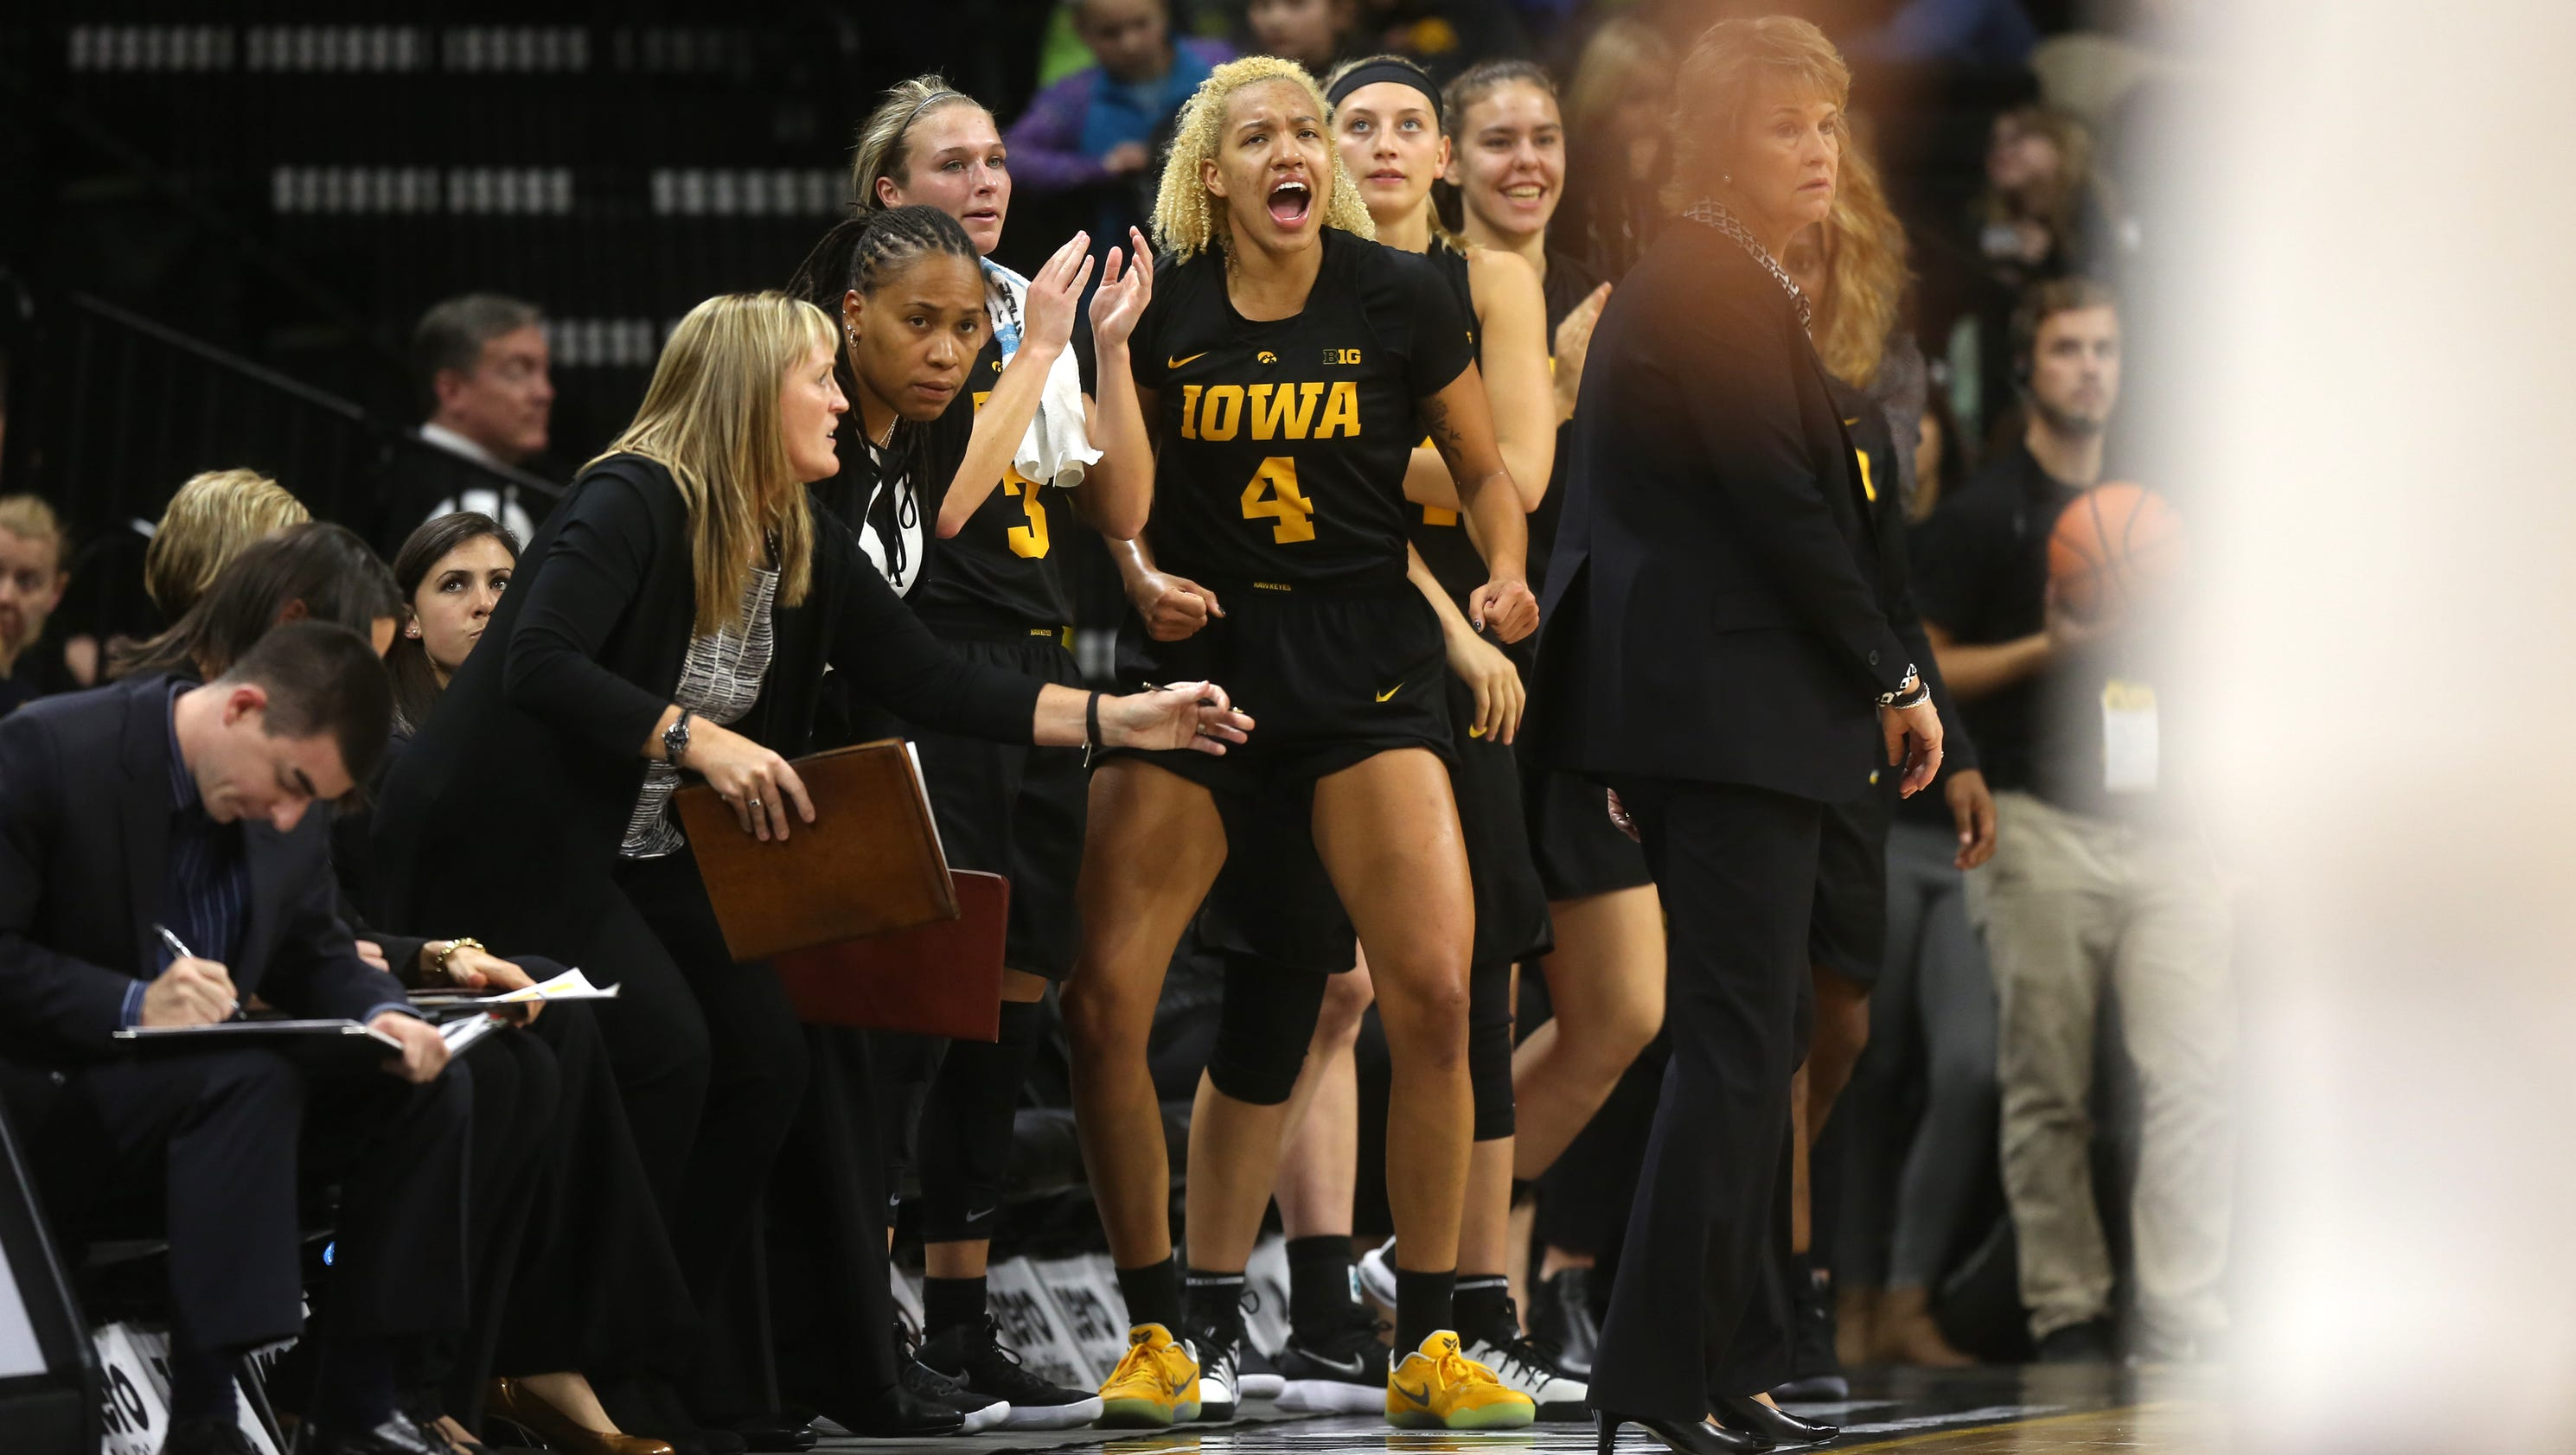 636475864191187077-171129-01-iowa-vs-florida-state-womens-basketball-ds